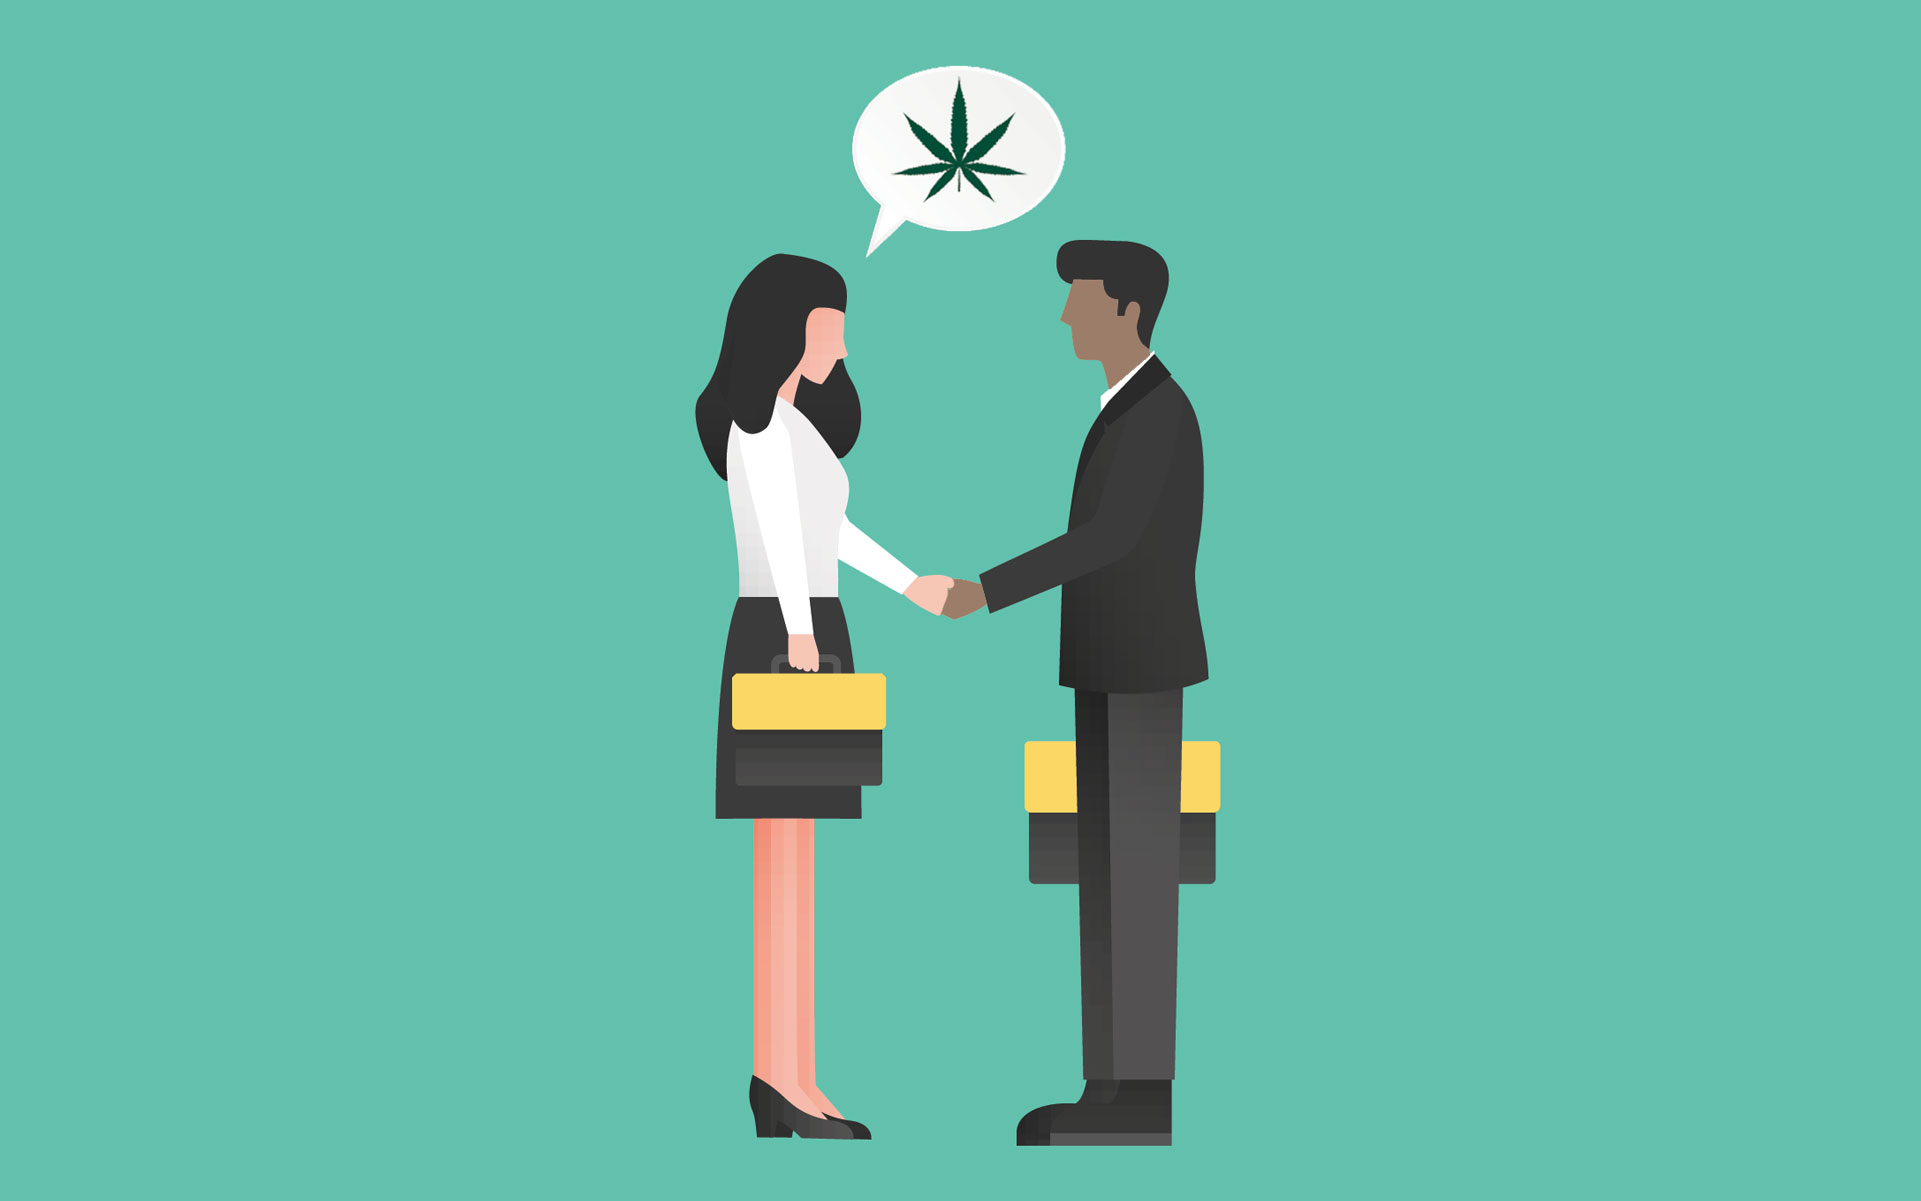 Two people shake hands, above them is a speech bubble with an image of a cannabis leaf.